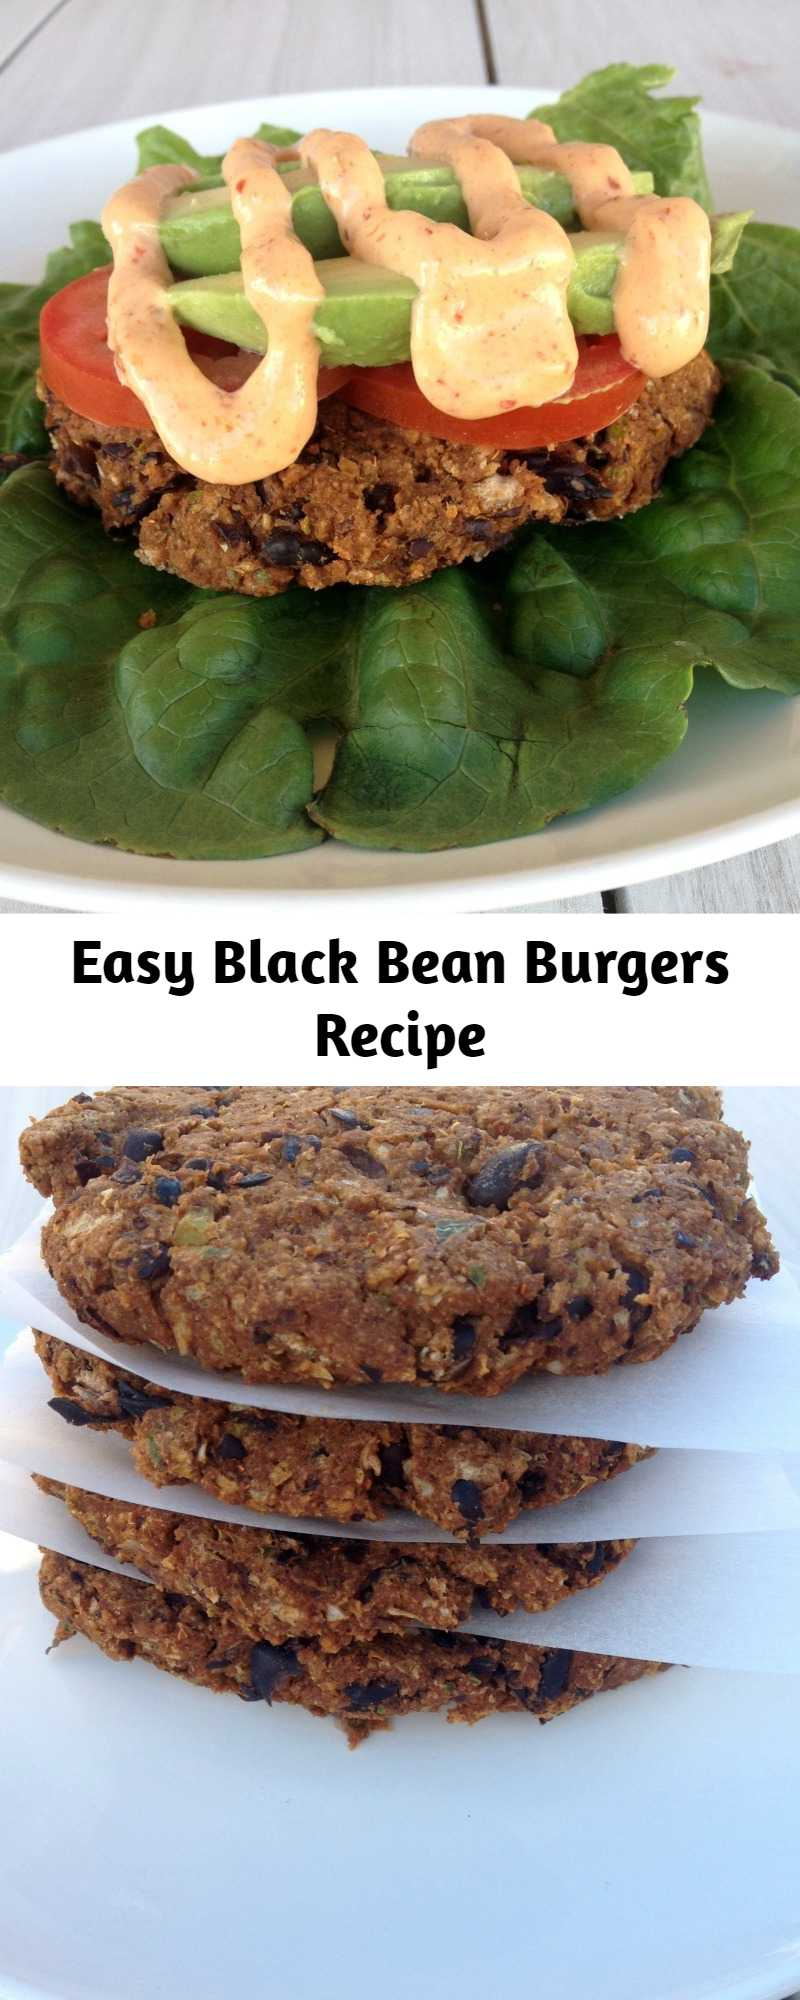 Easy Black Bean Burgers Recipe - These are THE BEST Black Bean Burgers I have ever had! Easy, healthy and so delicious!